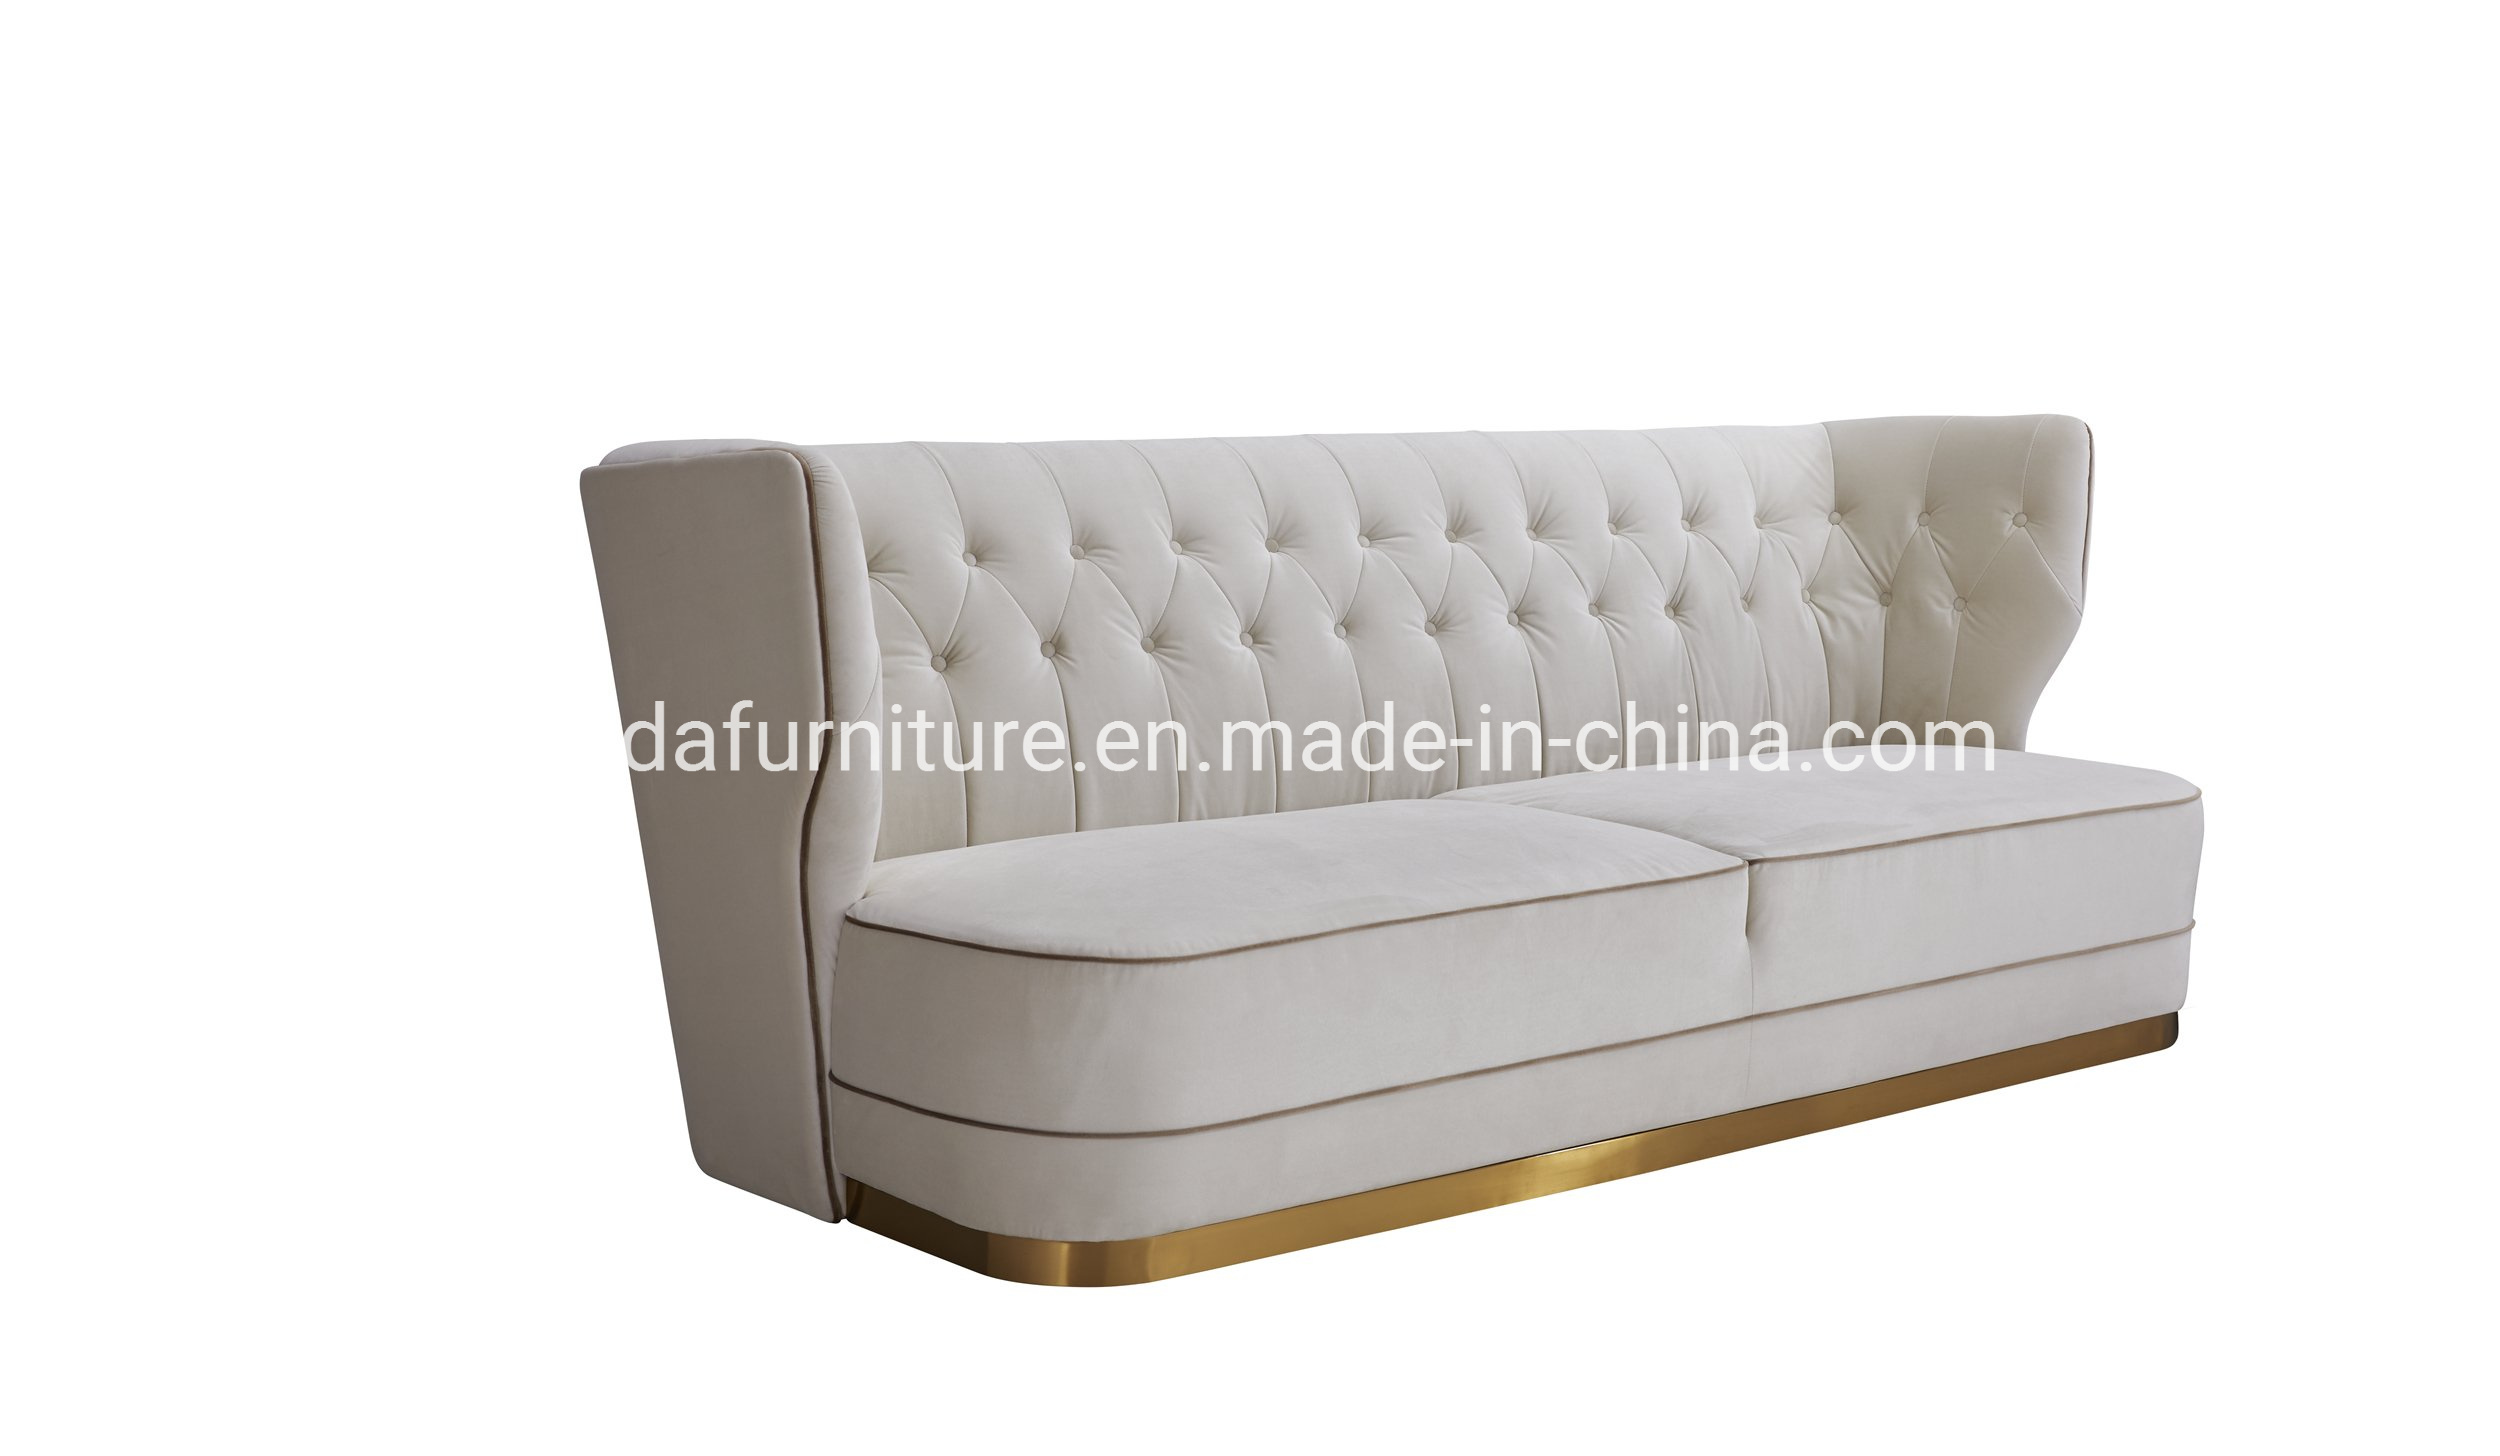 Picture of: China Comtemporary Luxury High Backrest Home Living Room Palace Furniture Set Sofa China Luxury Sofa High Backrest Sofa